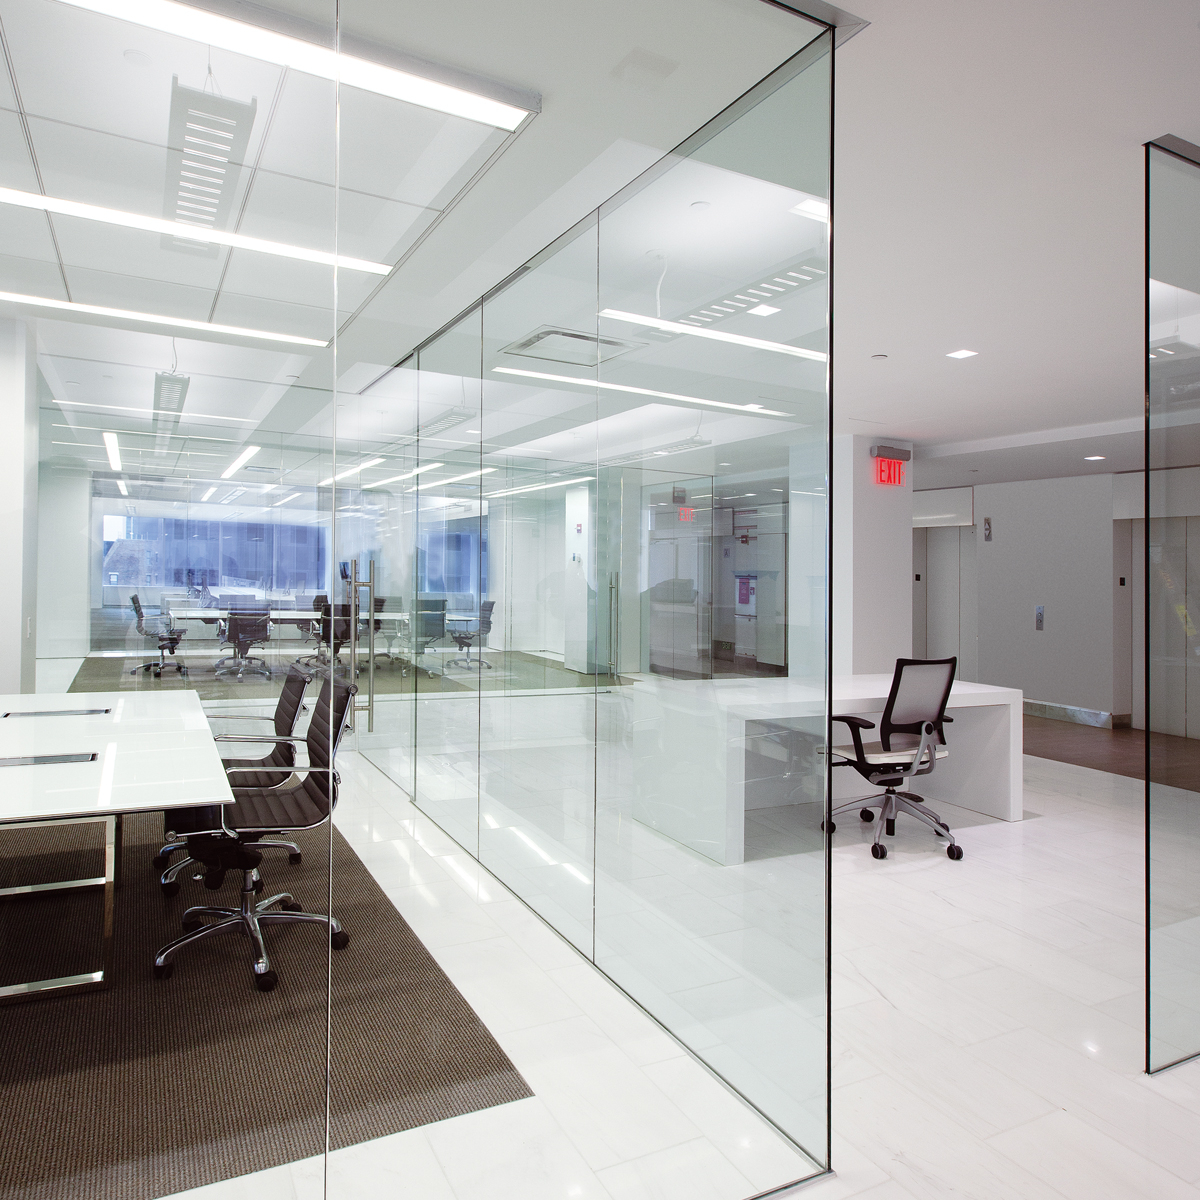 DORMA Interior Glass Wall Systems – Transparency and Versatility